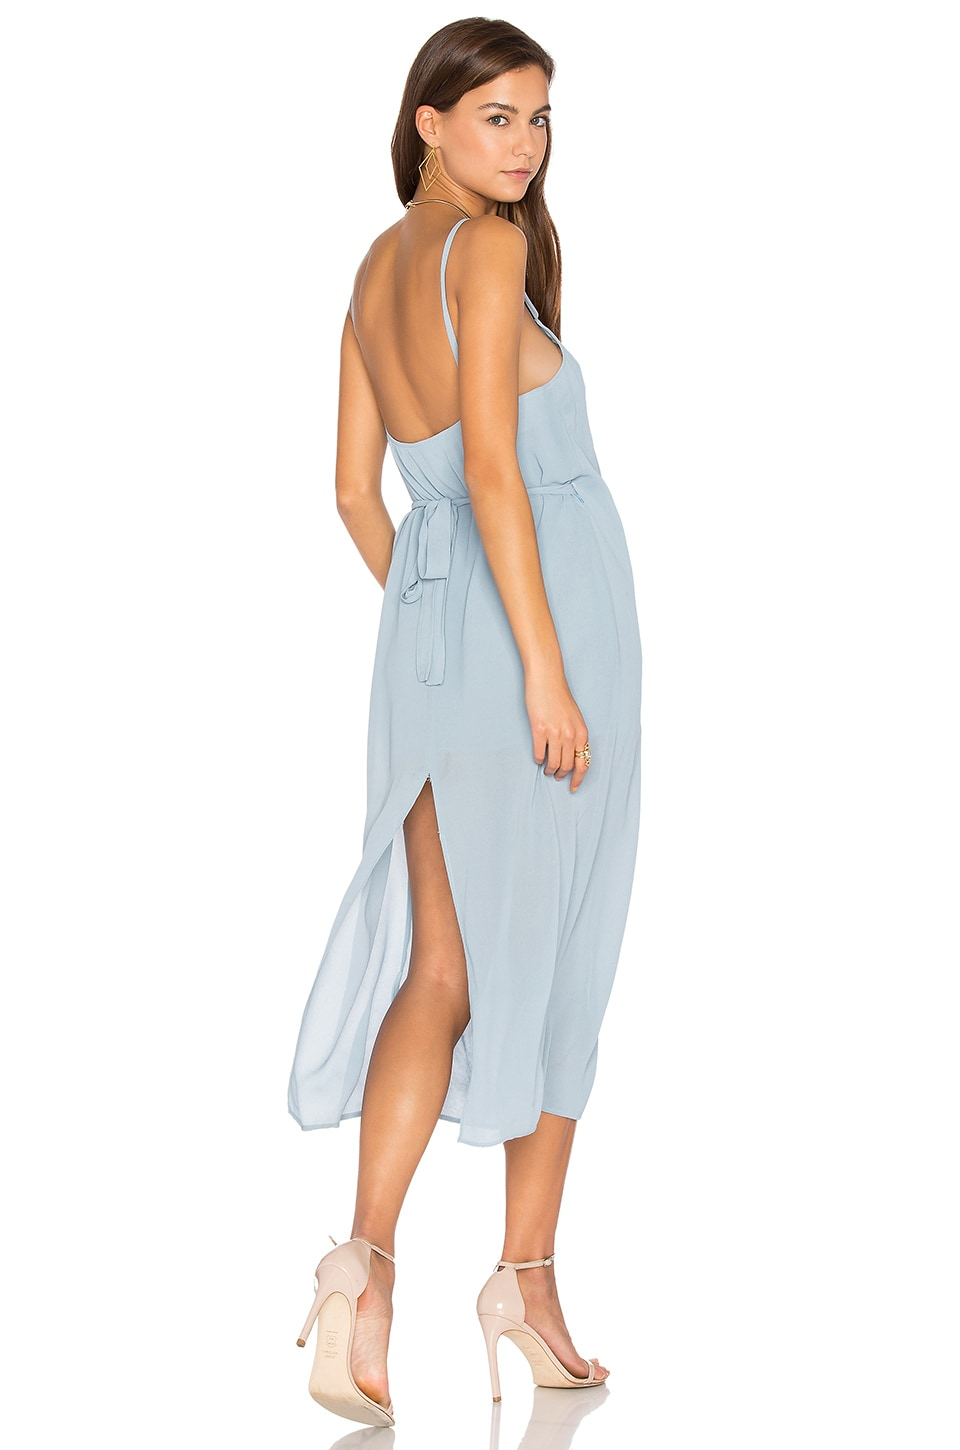 Lazlo Slip Dress by Pfeiffer